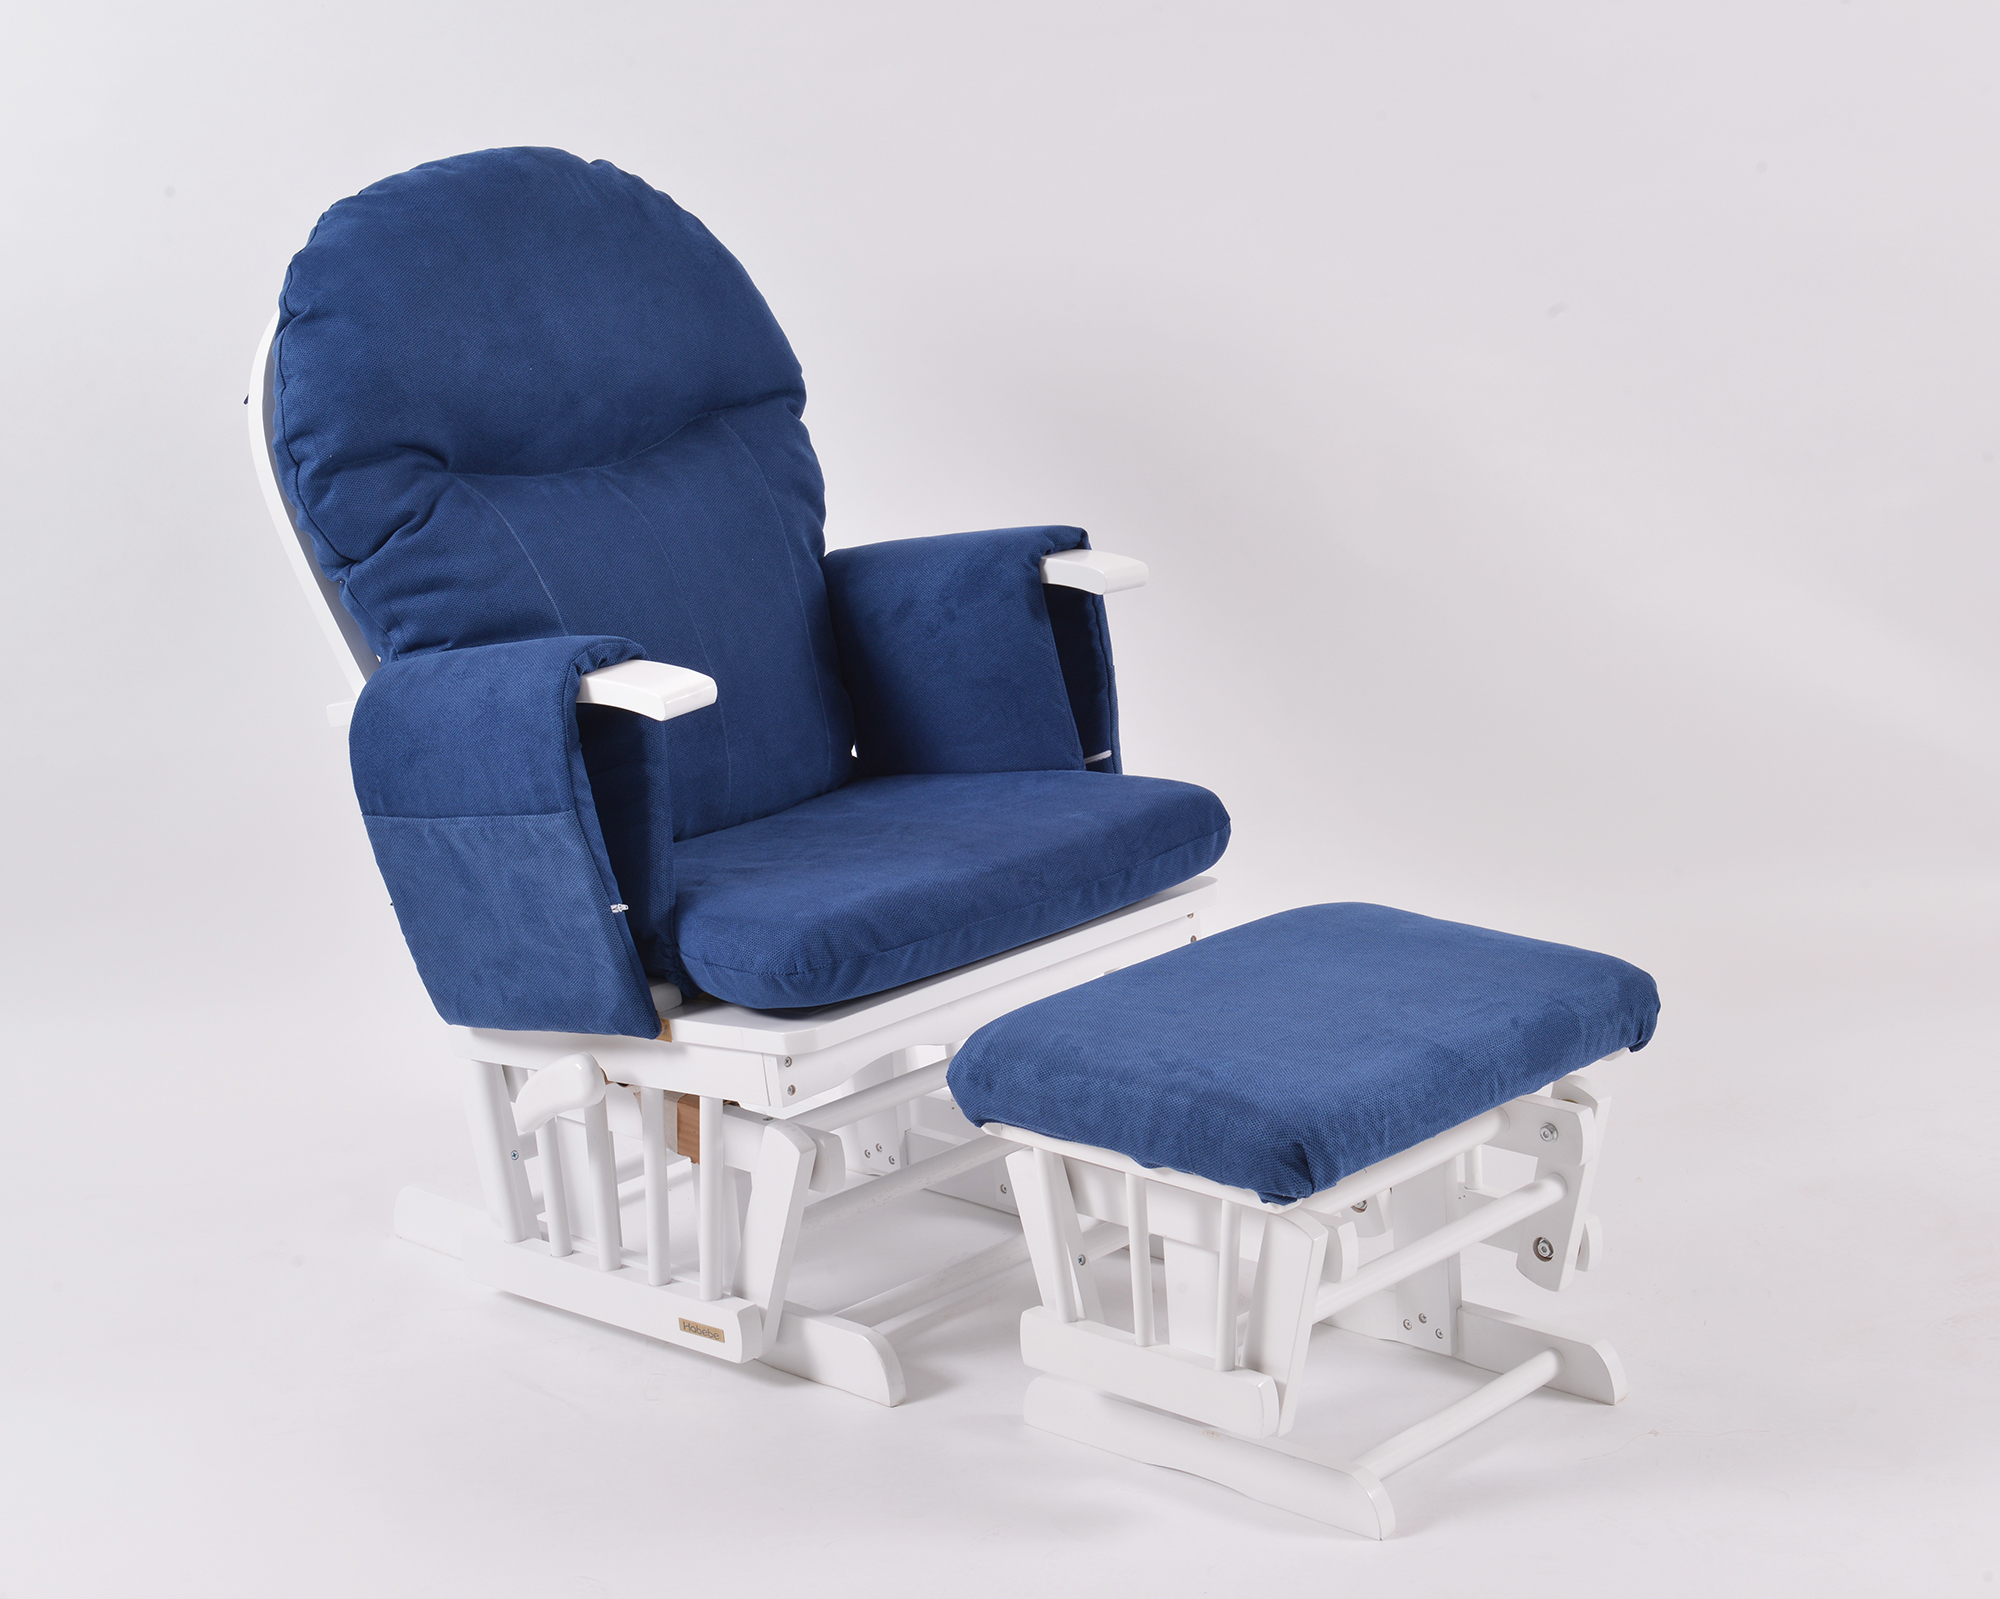 Different positions on chair clear hindi - 3 5